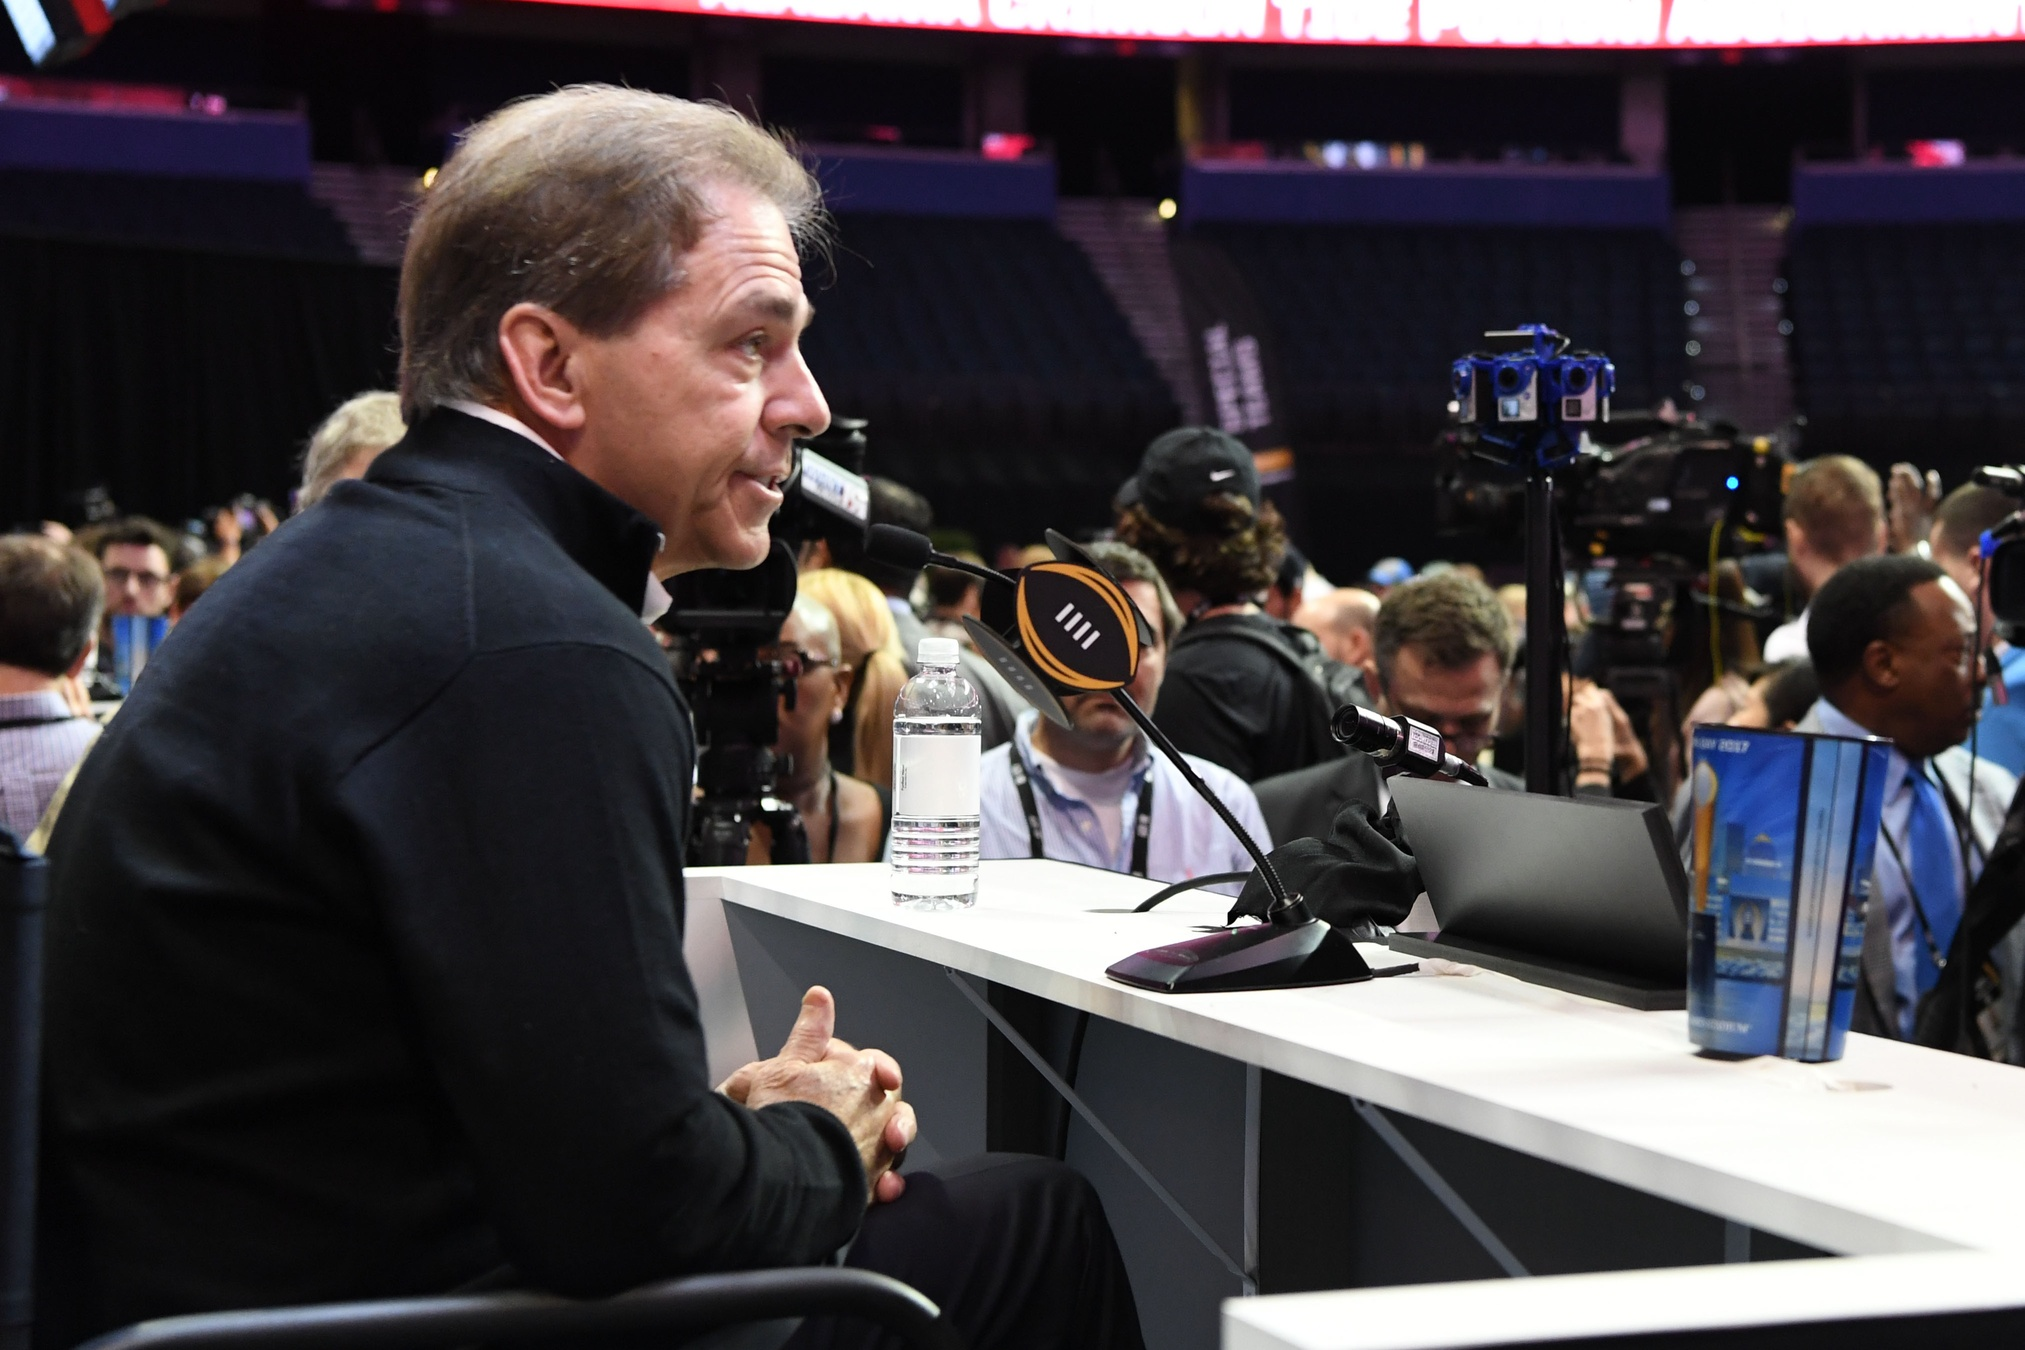 Jan 7, 2017; Tampa, FL, USA; Alabama Crimson Tide head coach Nick Saban during the Alabama Crimson Tide media day at Amalie Arena. Mandatory Credit: John David Mercer-USA TODAY Sports